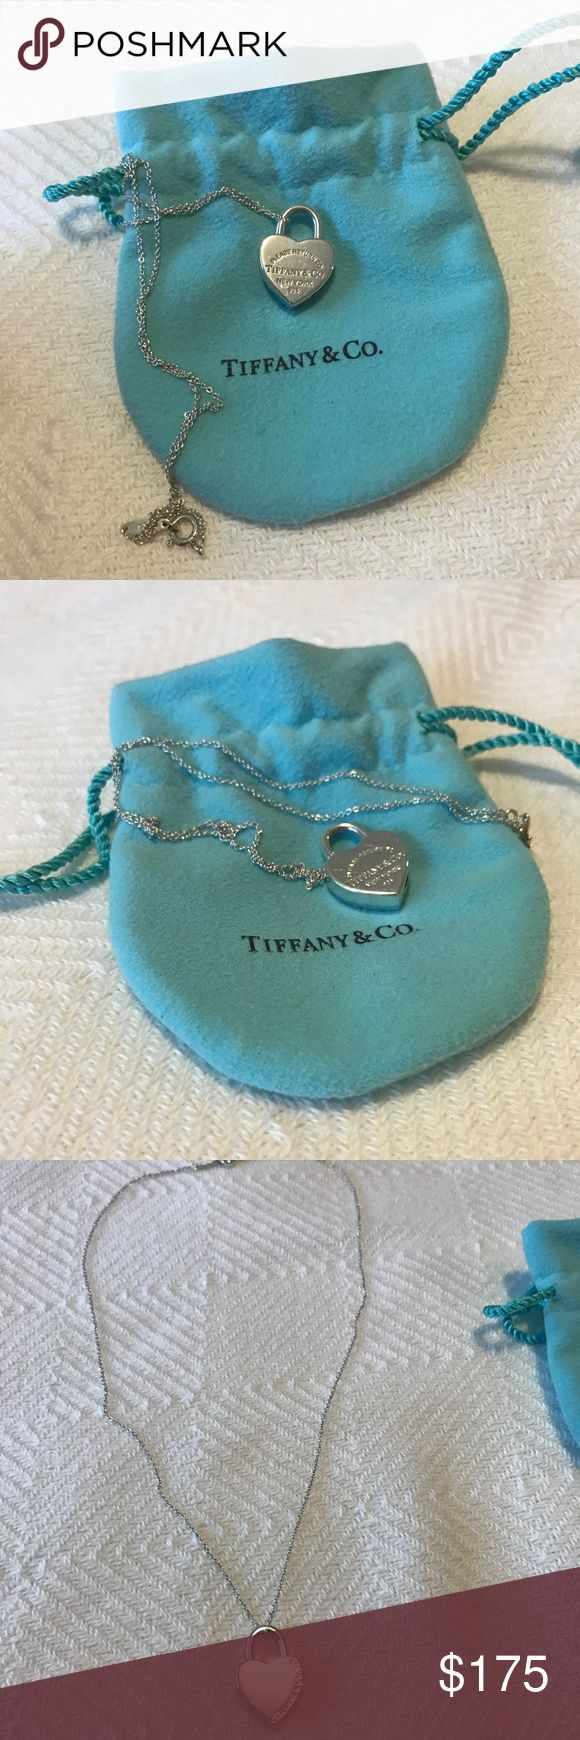 "Tiffany & Co. heart locket pendant necklace 100% Authentic Tiffany & Co. heart locket necklace, sterling silver, EXCELLENT condition.  Engraved ""Return to Tiffany & Co. New York 925"". Great everyday piece! Comes with signature Tiffany & co jewelry pouch. Tiffany & Co. Jewelry Necklaces"